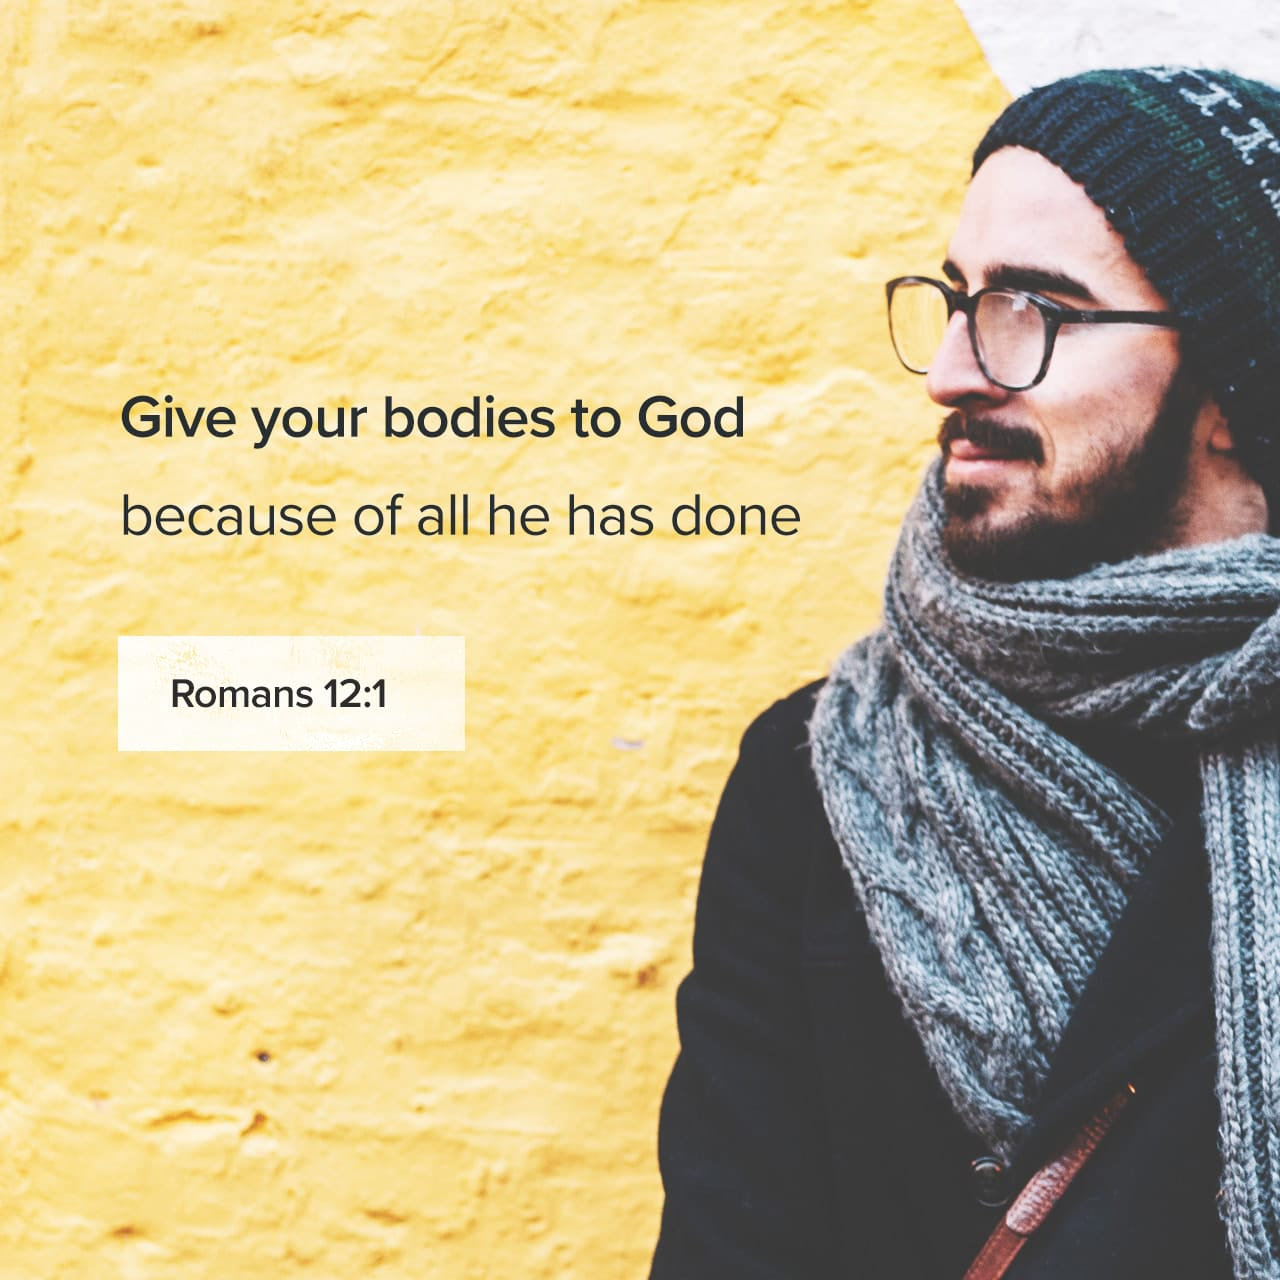 Romans 12:1 I beseech you therefore, brethren, by the mercies of God, that ye present your bodies a living sacrifice, holy, acceptable unto God, which is your reasonable service. | King James Version (KJV)